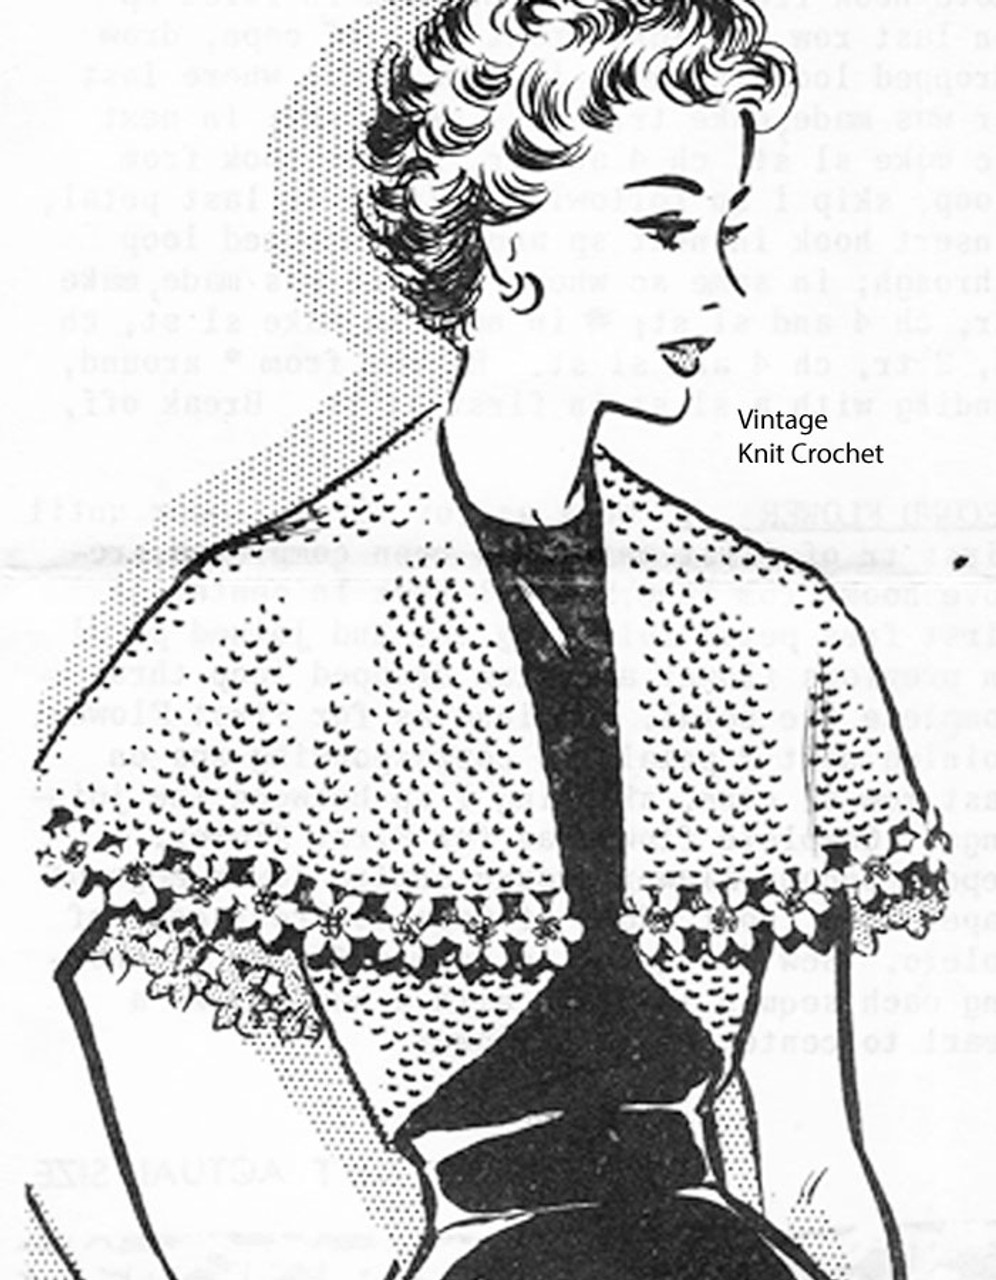 Mail Order capelet crochet pattern No 2227